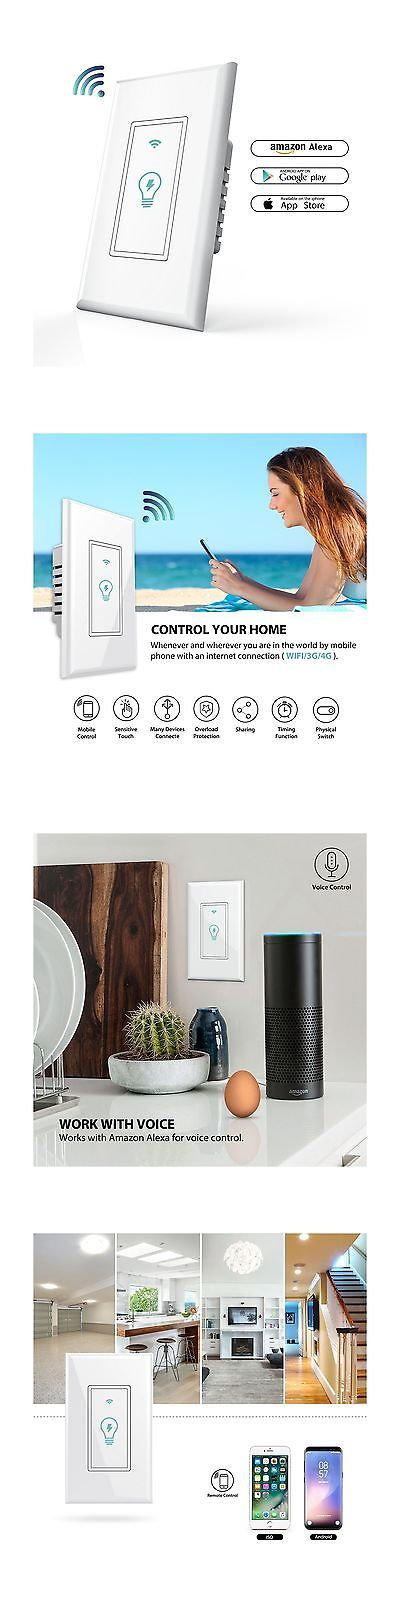 Home Automation Modules: Smart Wi-Fi Light Switch In-Wall Phone Remote Control Wireless Switch No Hub ... -> BUY IT NOW ONLY: $32.81 on eBay!